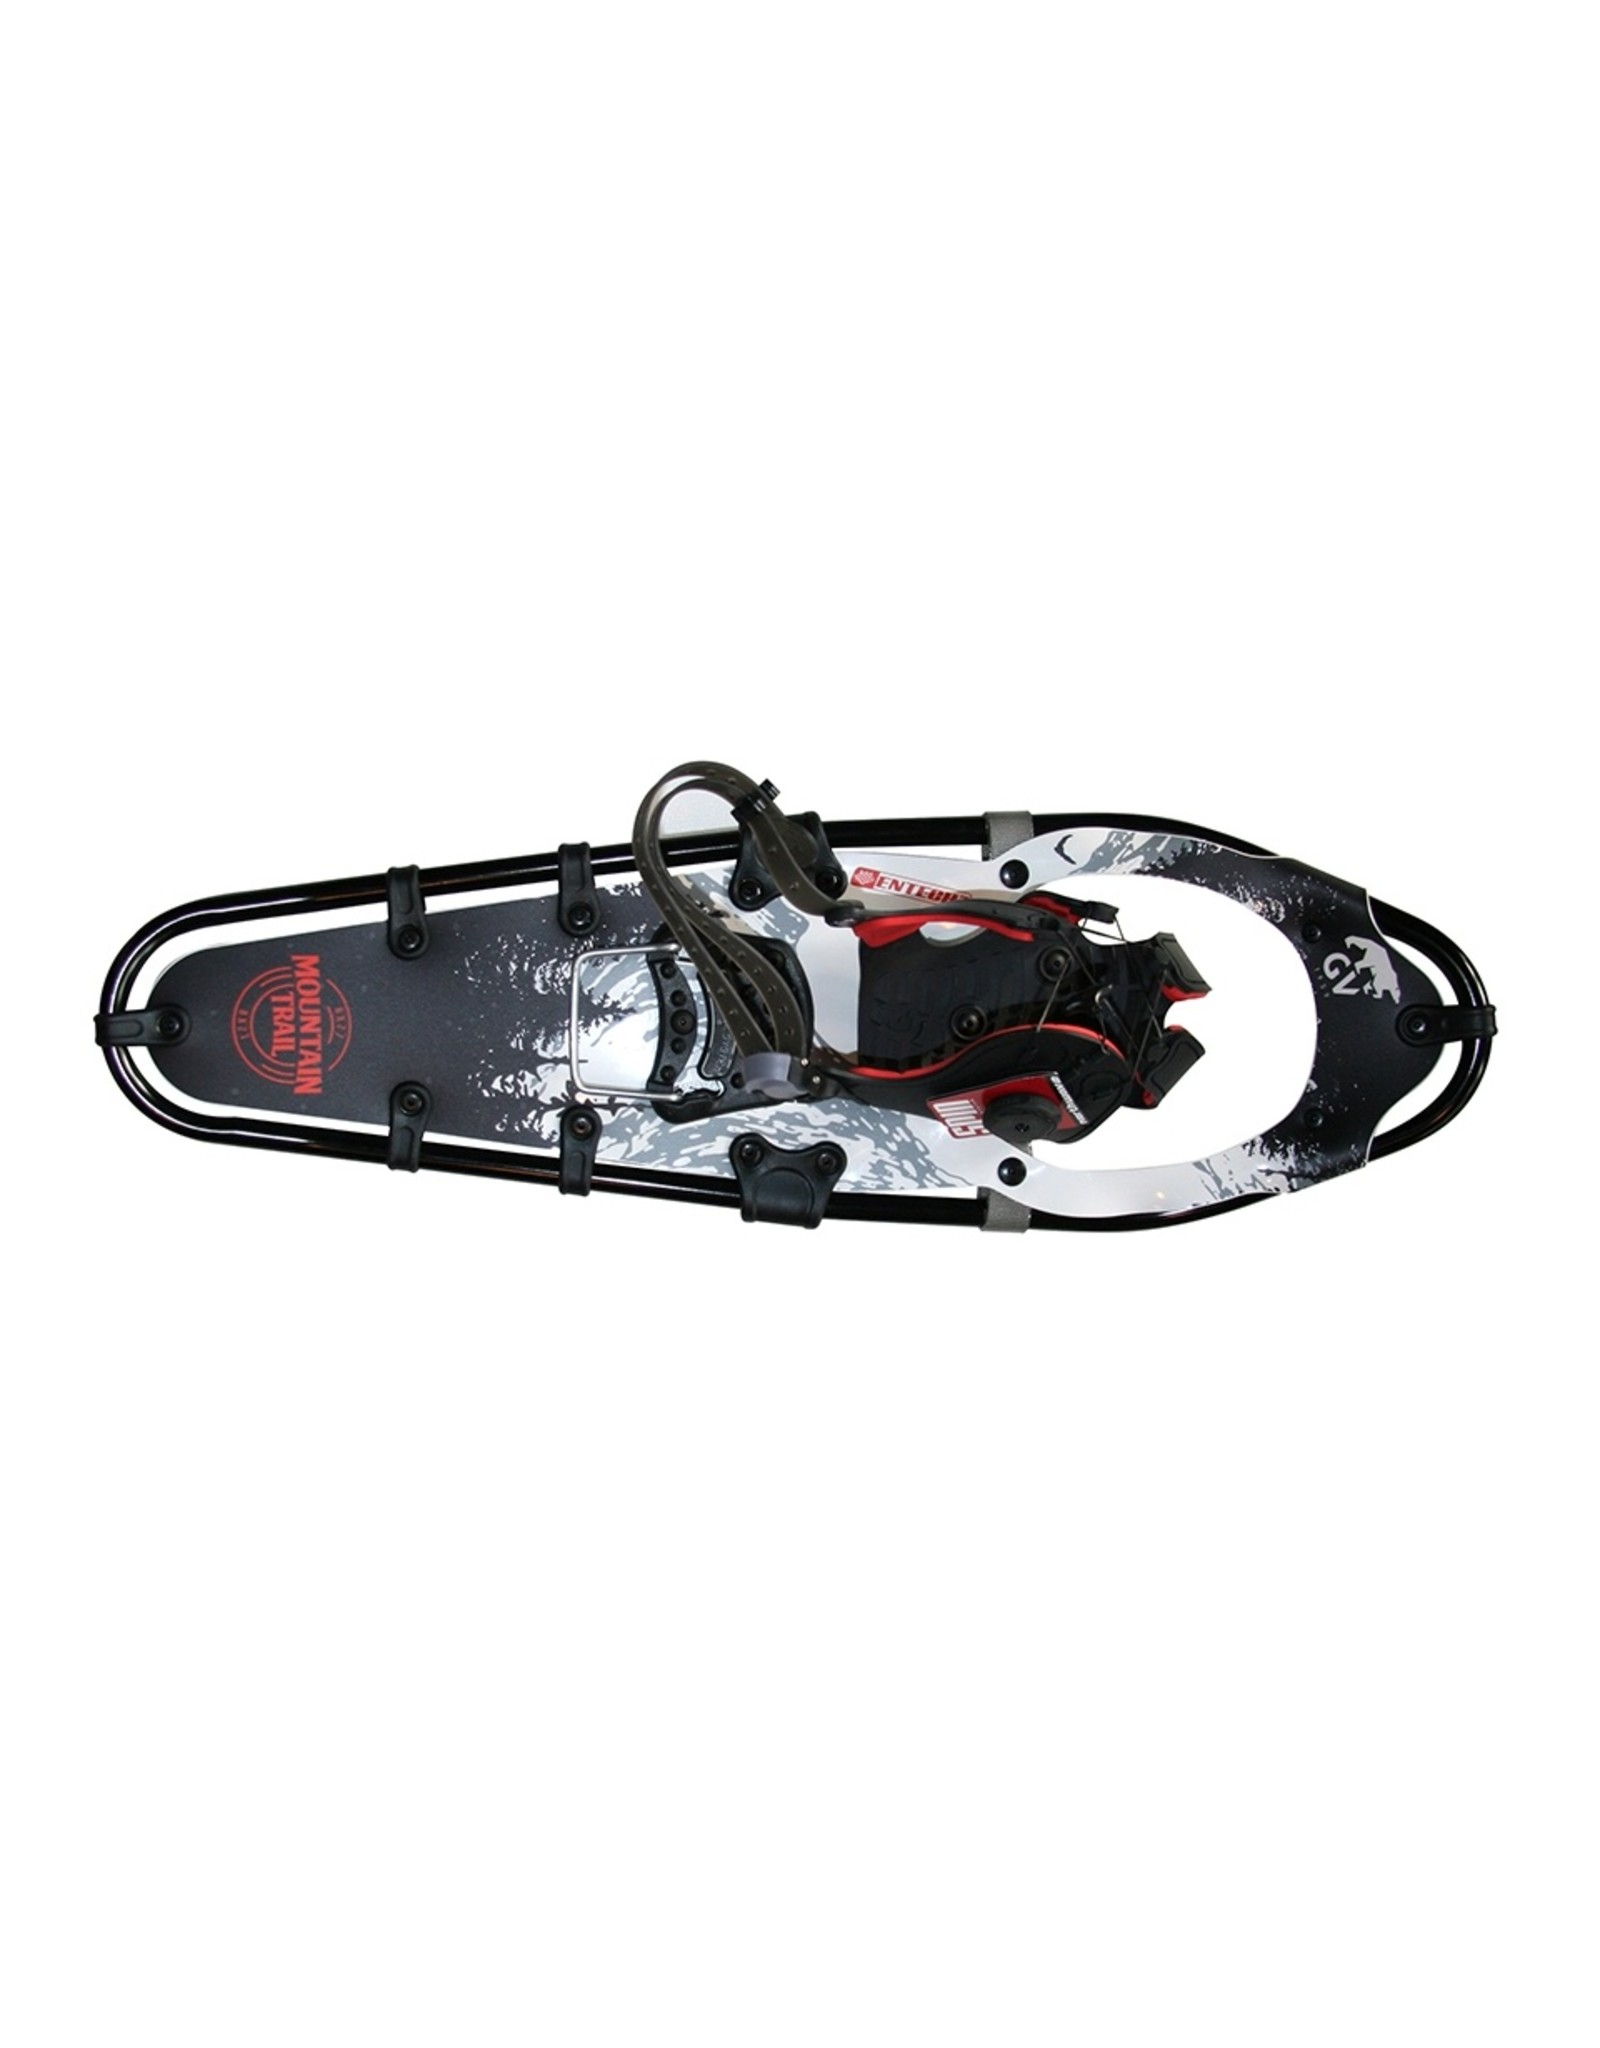 GV GV Mountain Trail Spin Snowshoe's